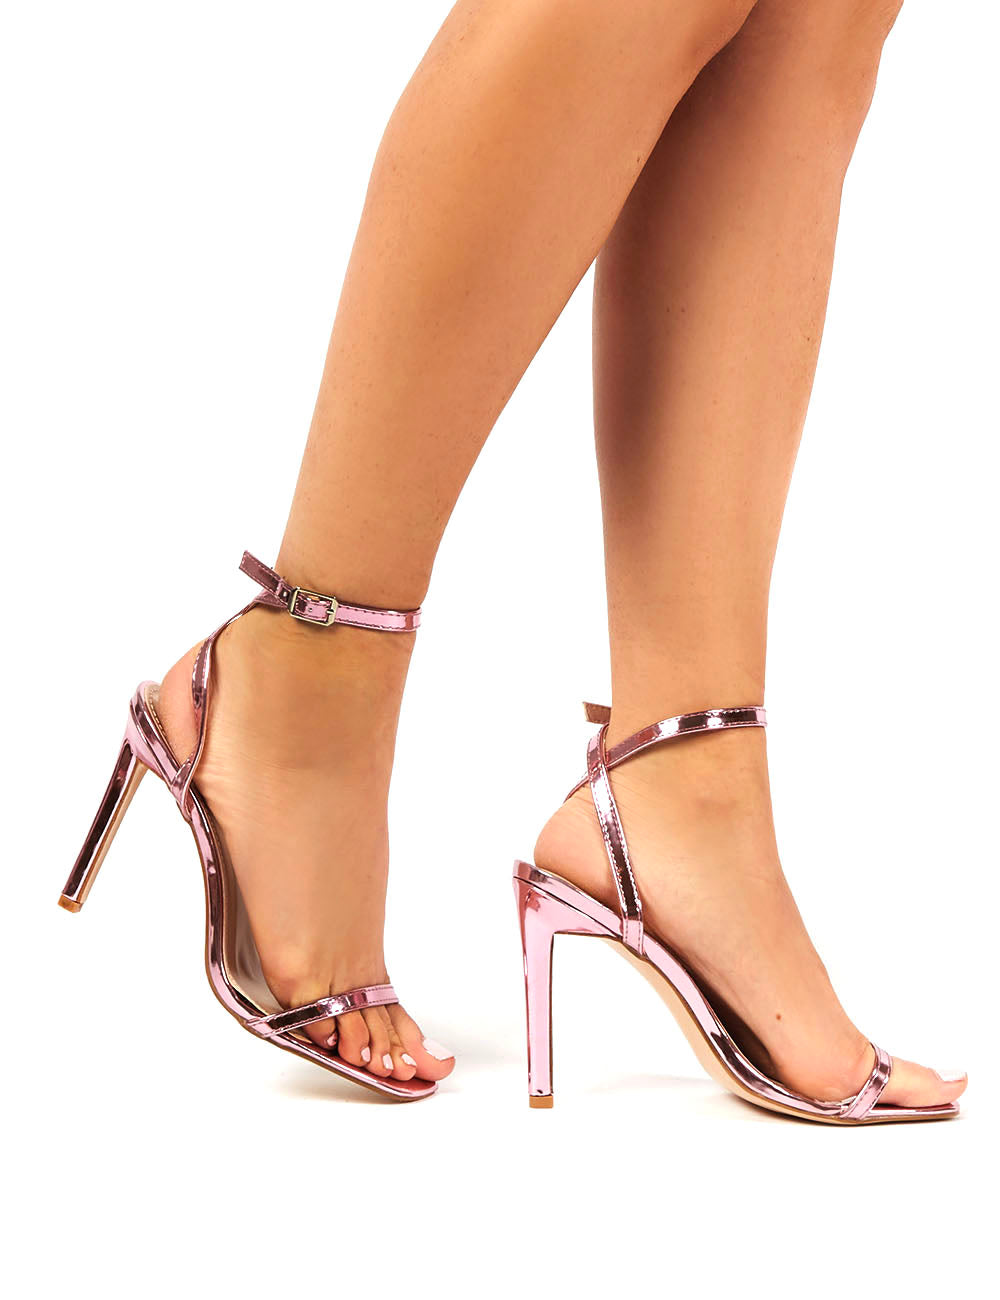 Notion Squared Toe Barely There Heels